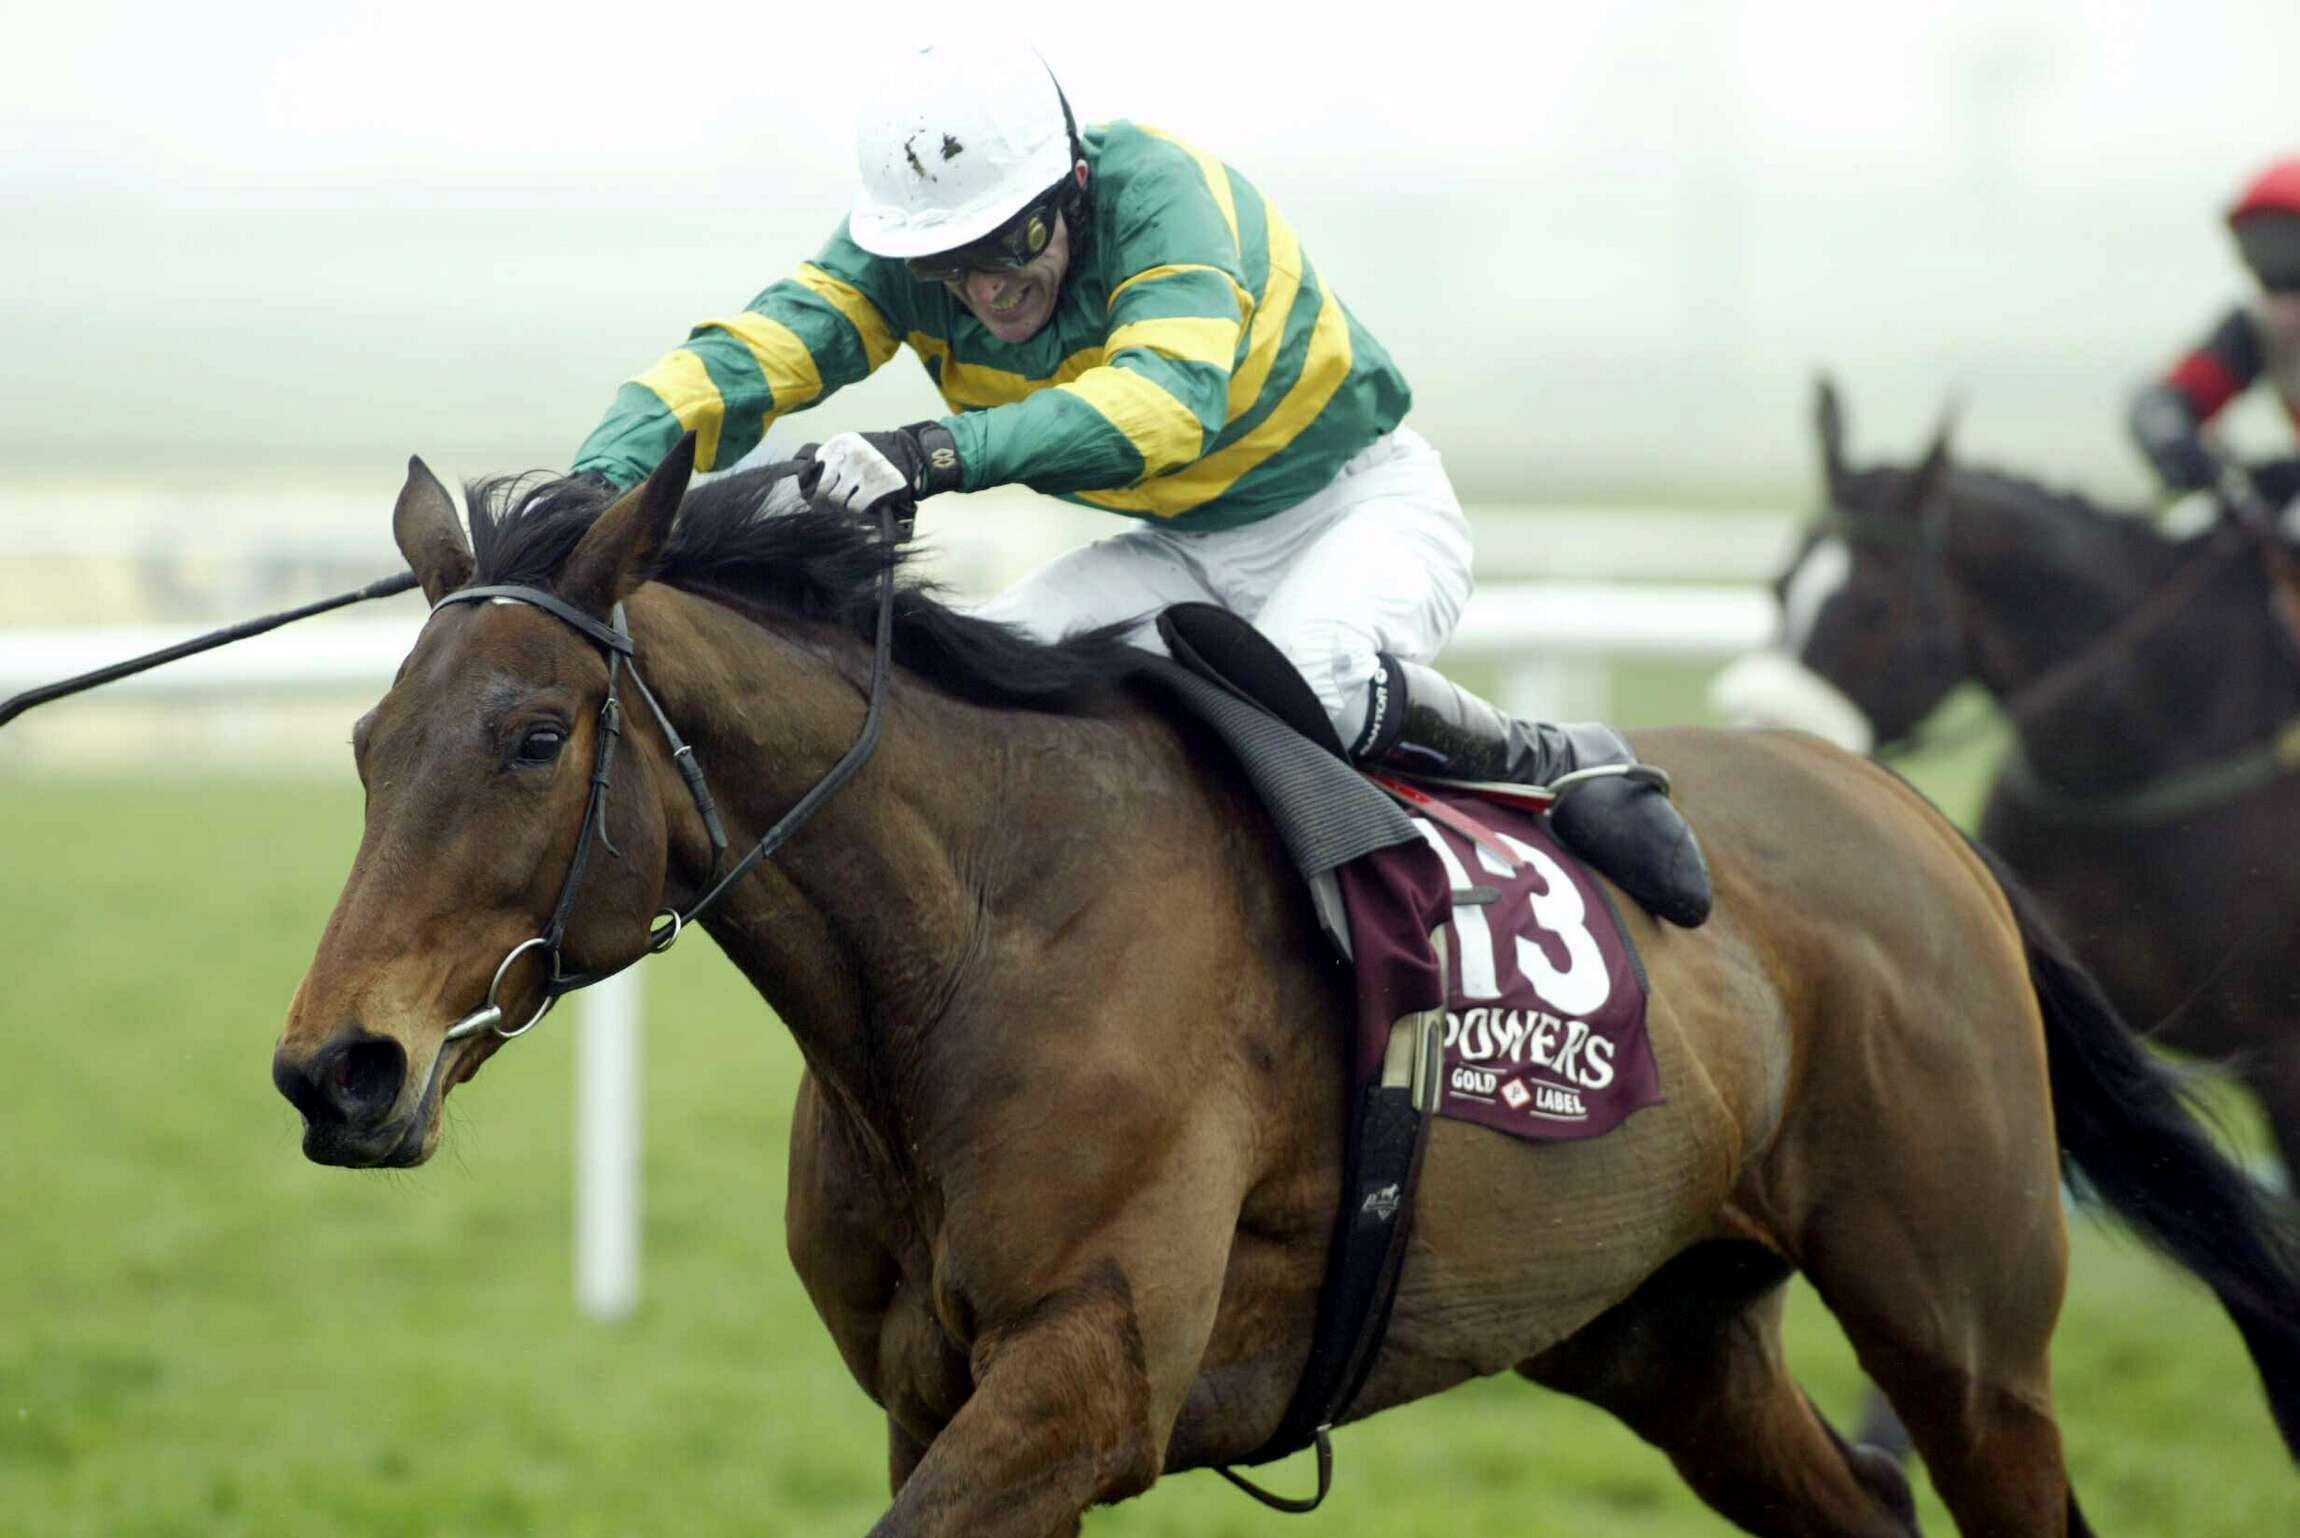 Pin by Horse Racing Ireland - goracing.ie on Stars of ...